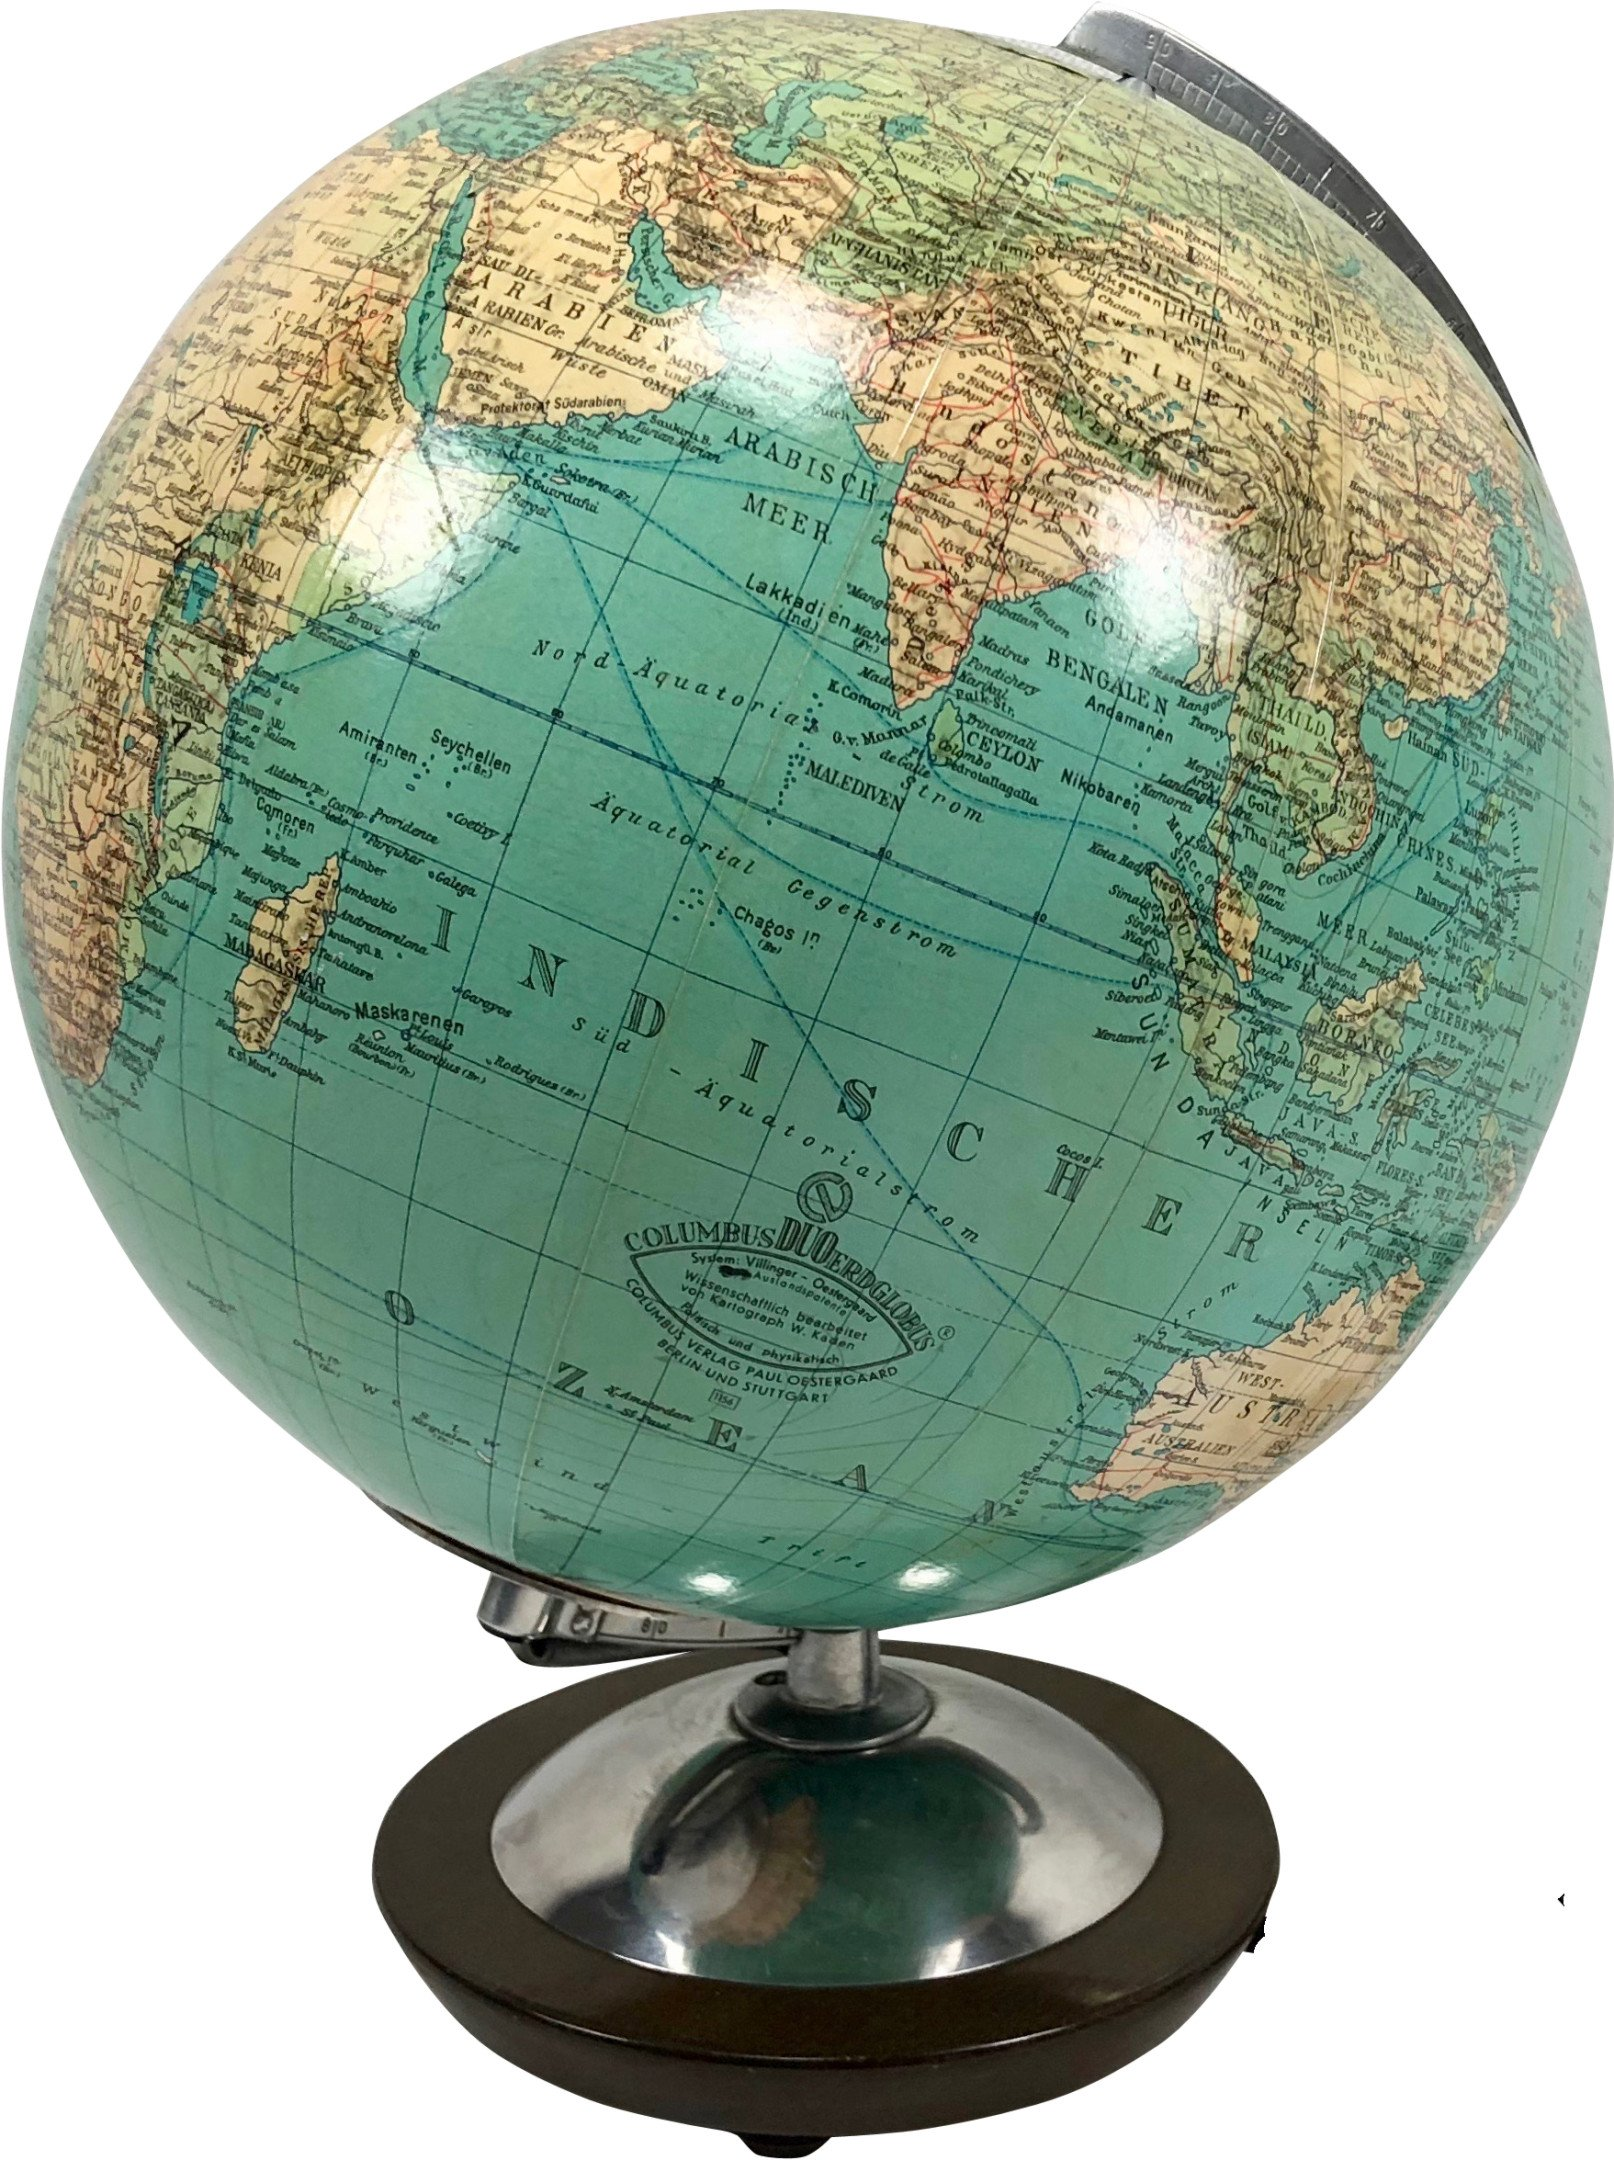 Glass Globe, Columbus Duo, Germany, 1970s